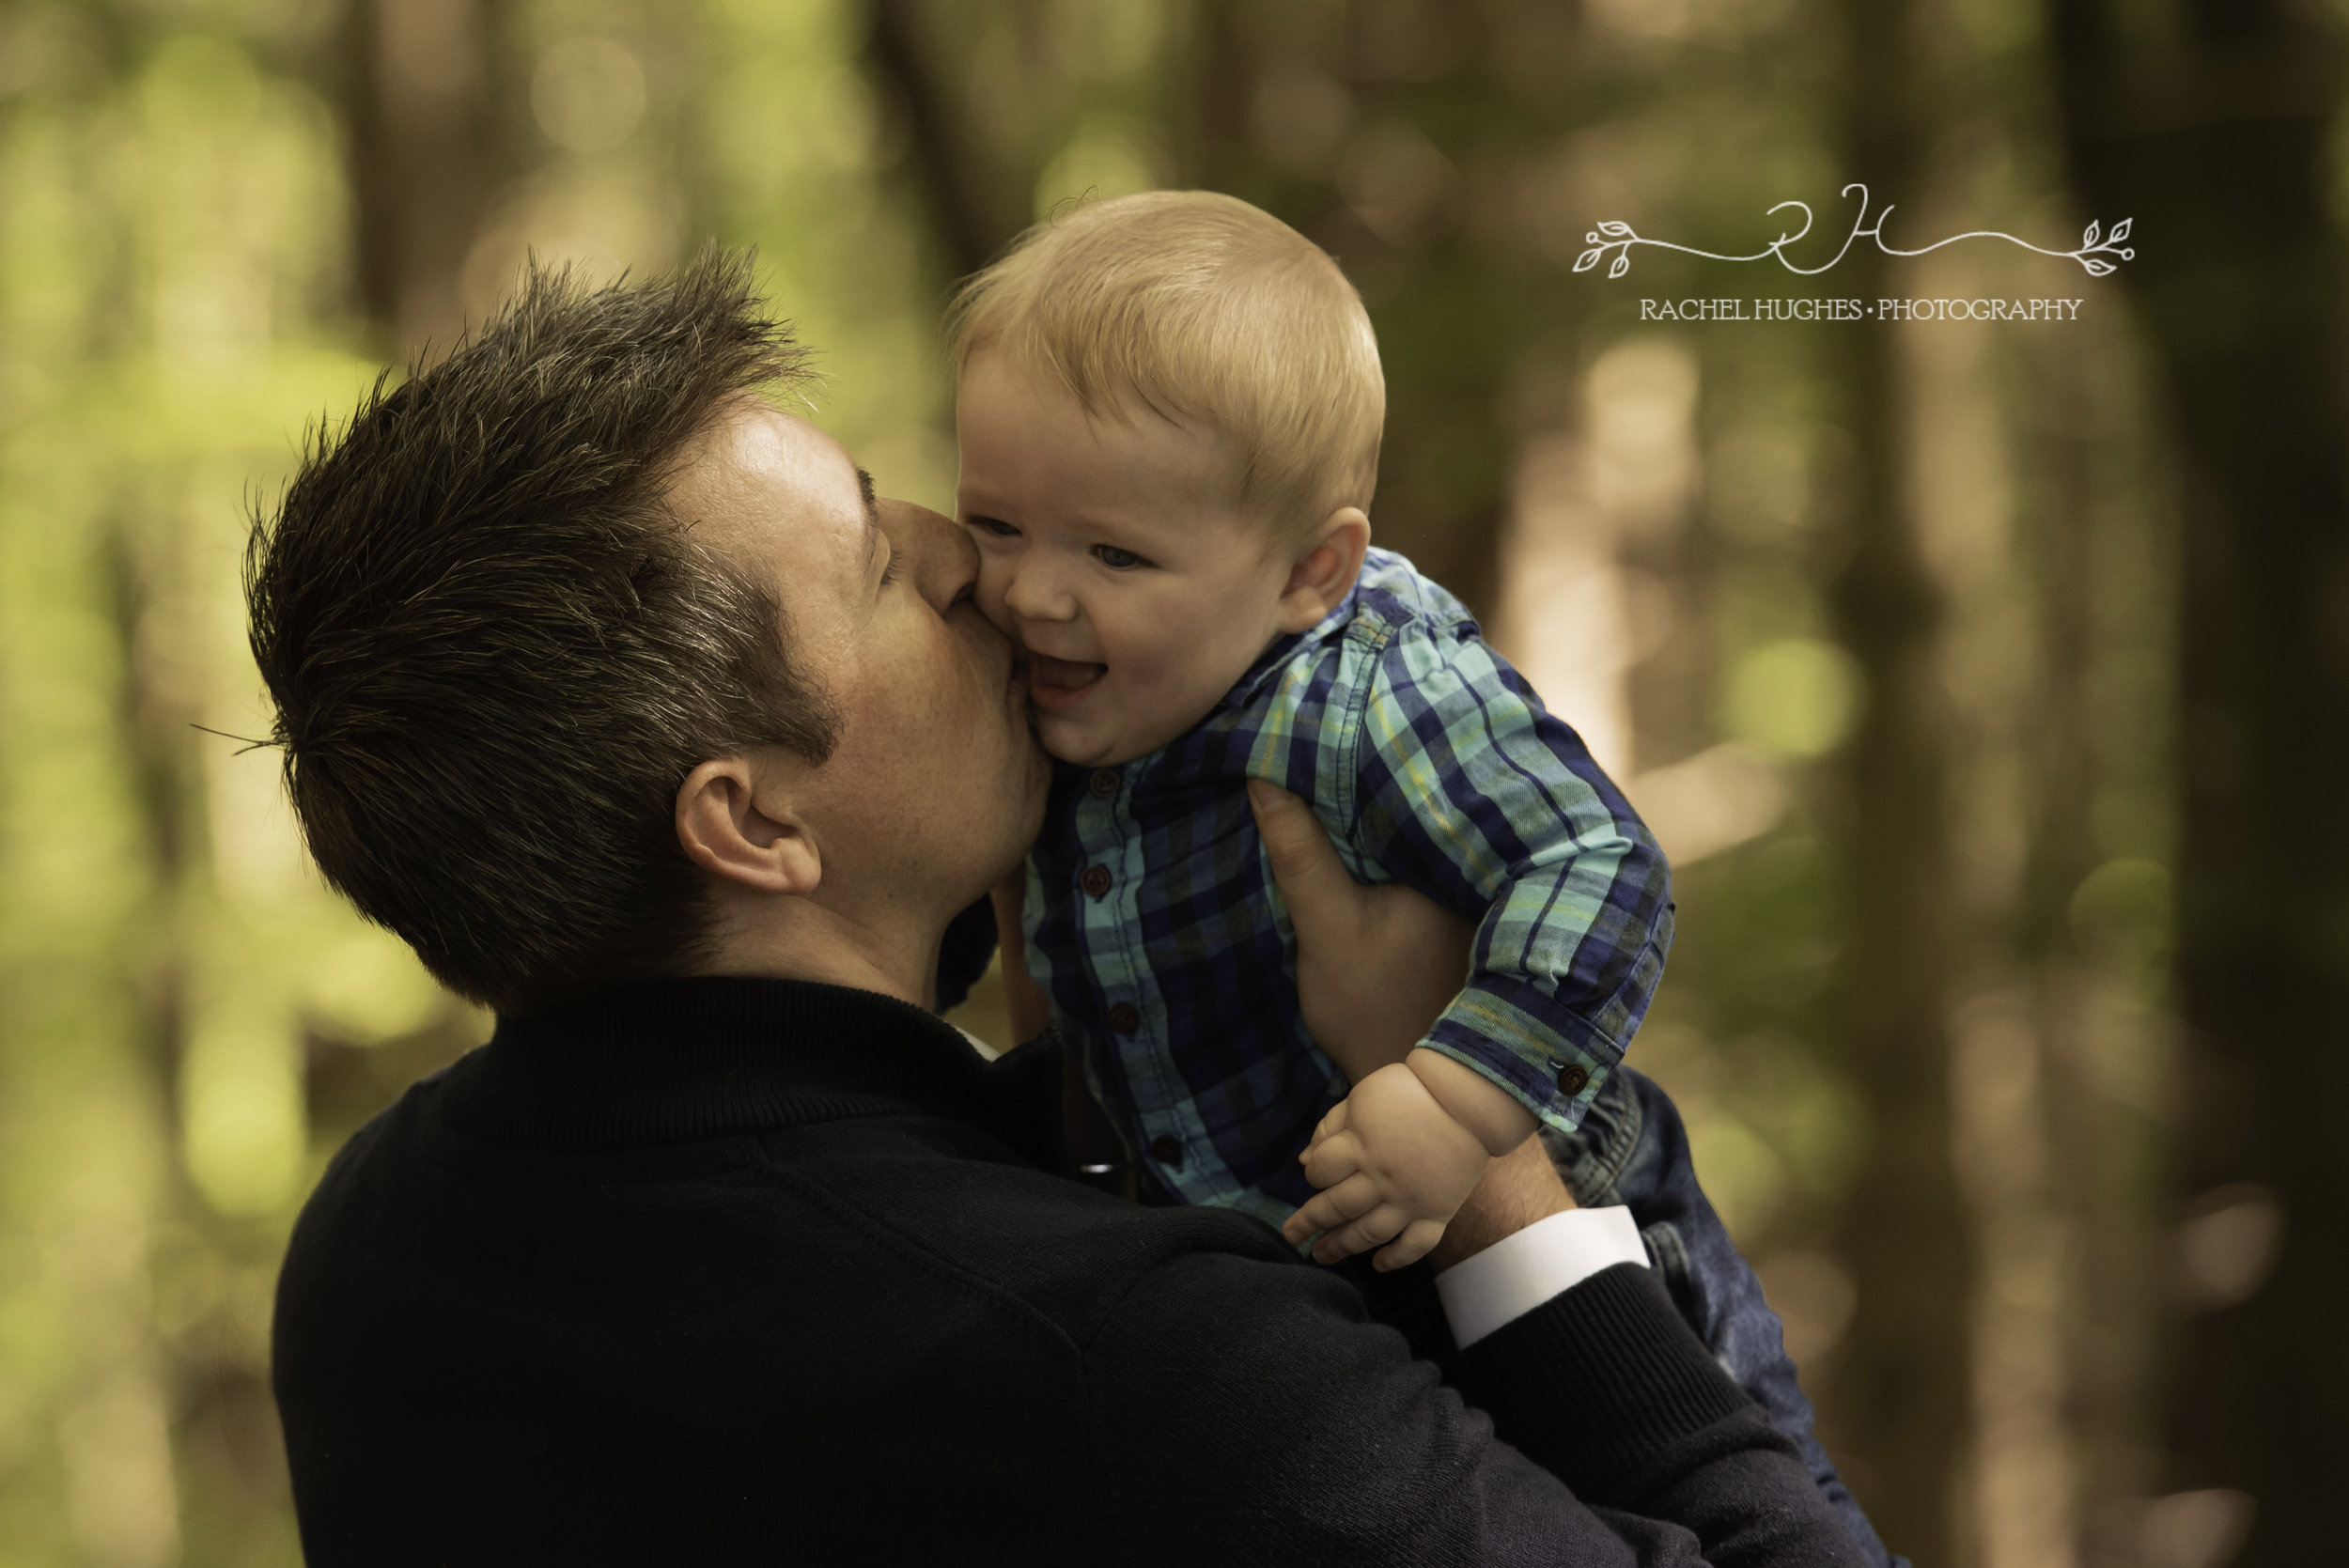 Daddy and baby photoshoot in Henley-on-Thames